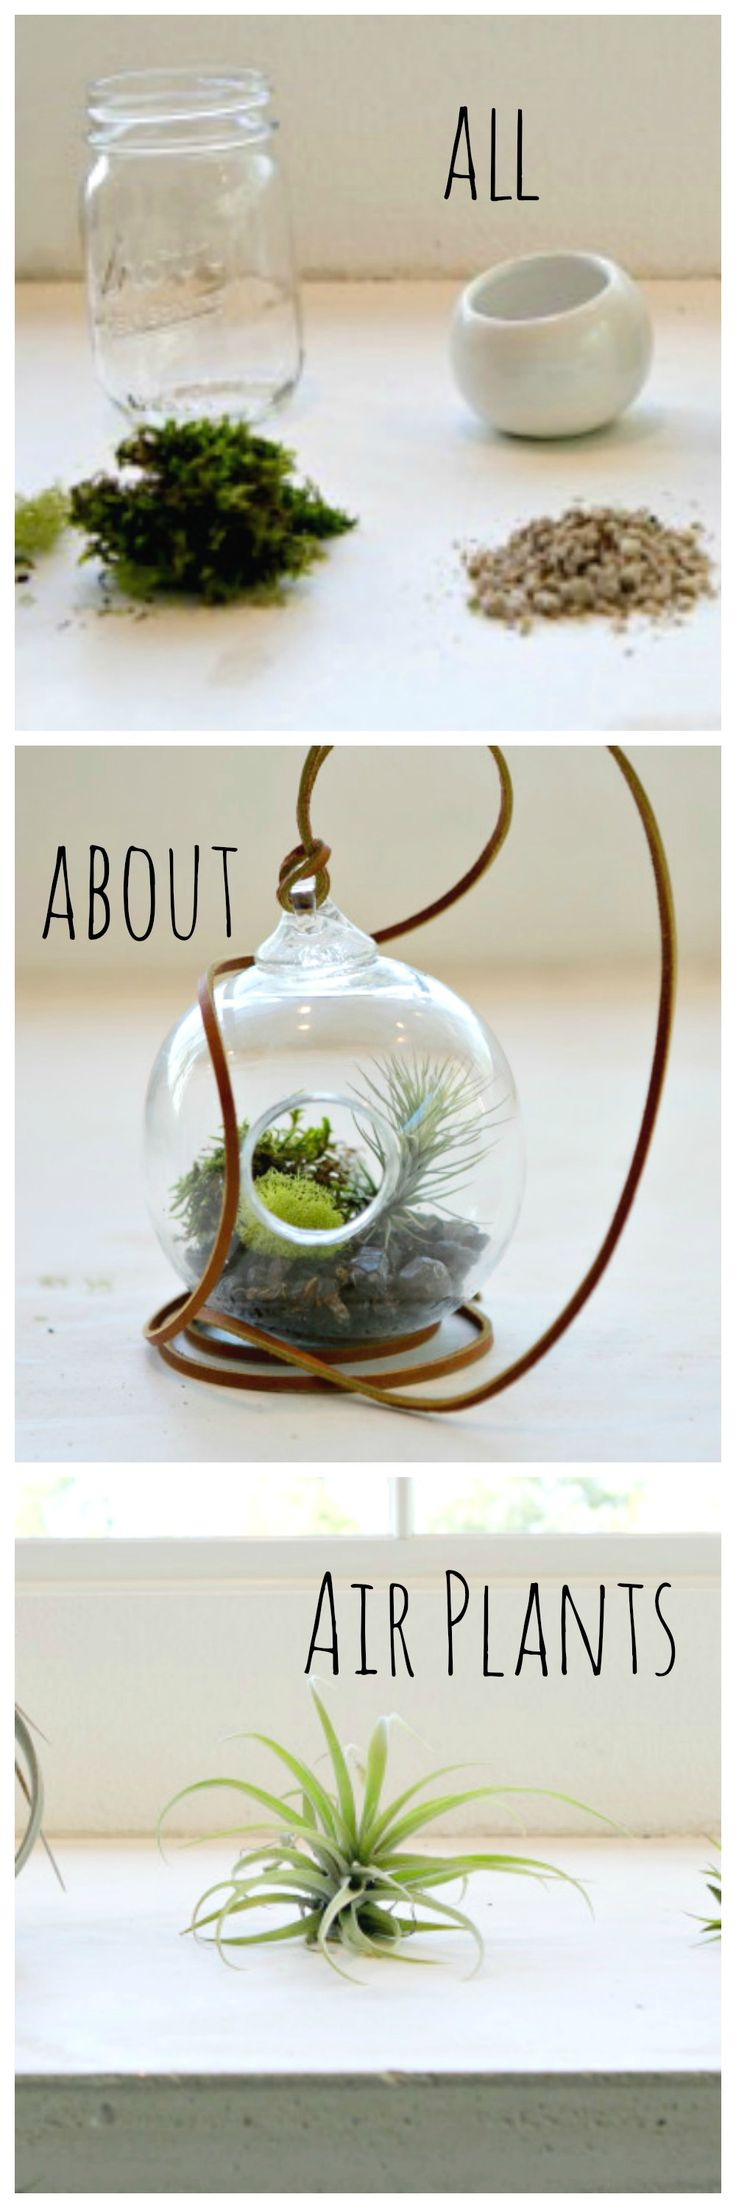 88 best air plants tillandsia images on pinterest for Indoor gardening kalamazoo